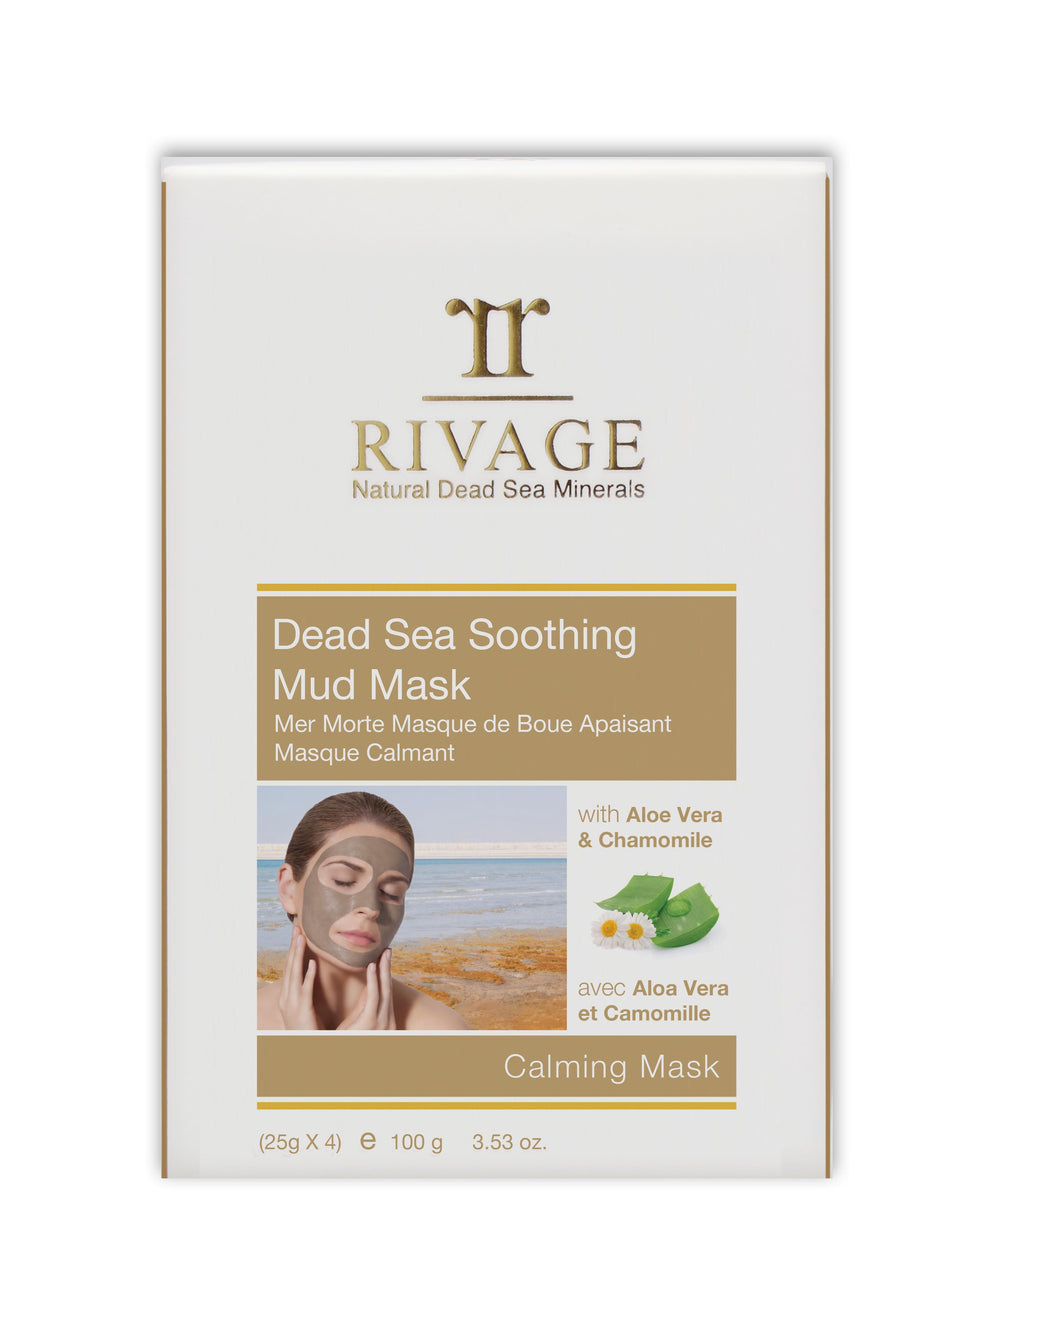 Dead Sea Soothing Mud Mask / Calming Mask - The Bath Club, INC